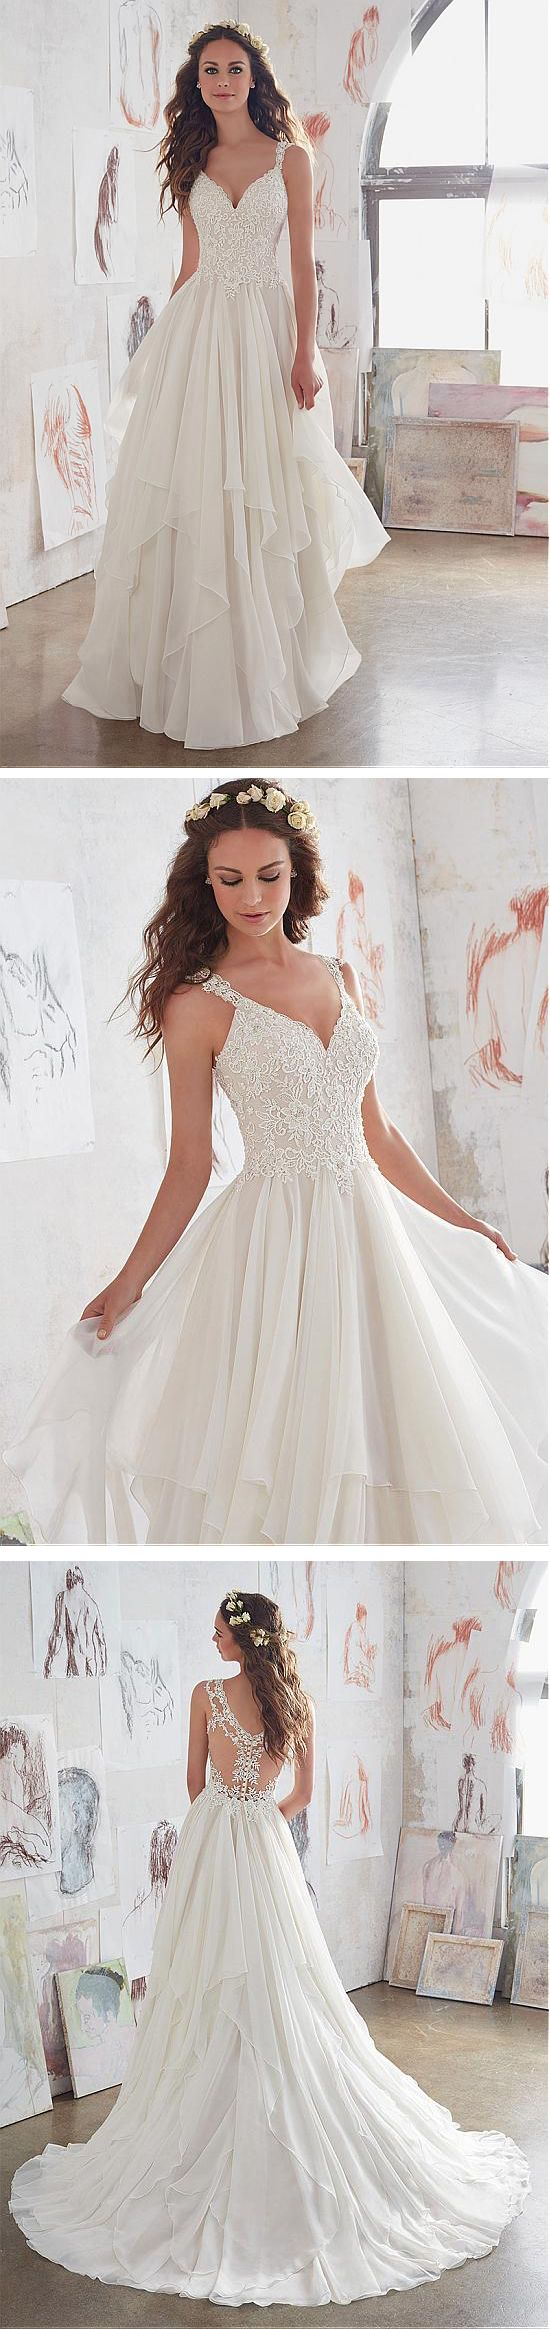 Chiffon V-Neck A-Line Wedding Dresses With Beaded Lace Appliques ...